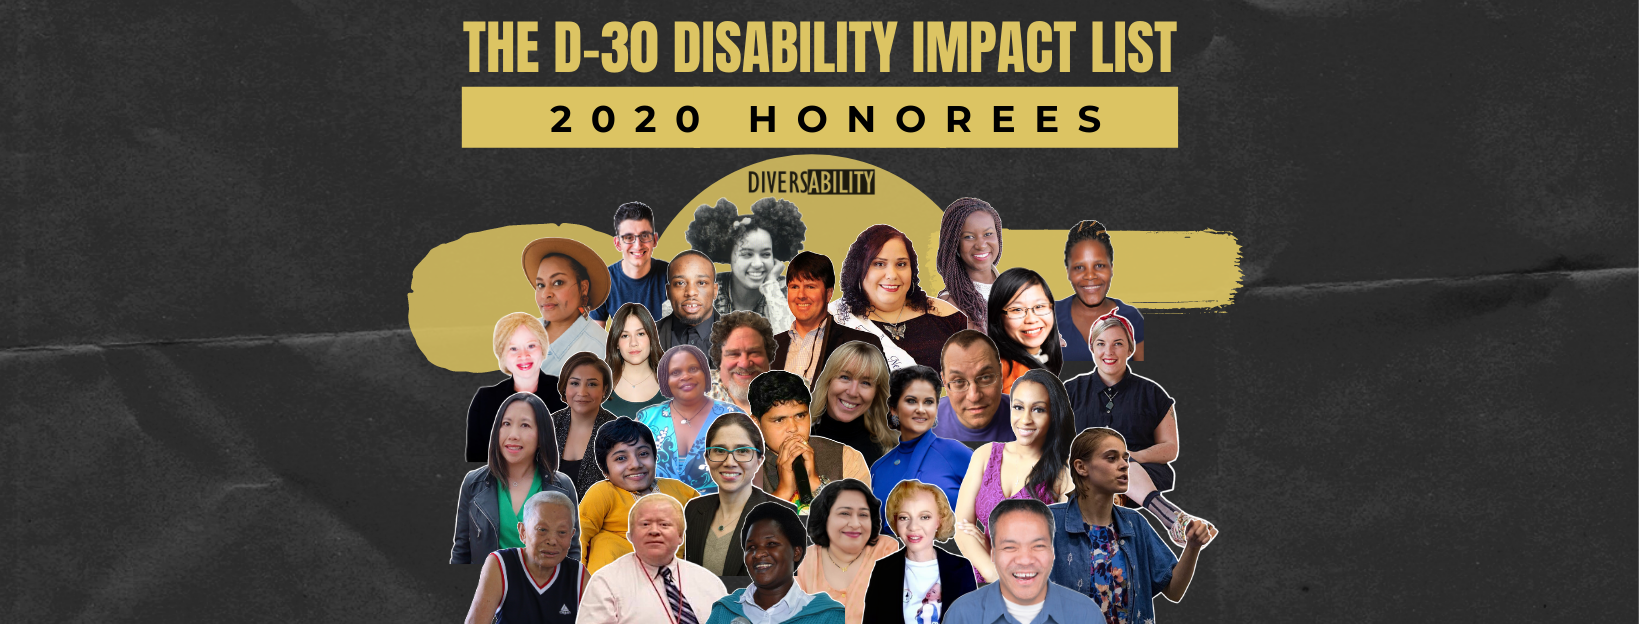 """rectangular graphic with a charcoal background. In gold block text, """"The D-30 Disability Impact List"""". Below, a gold bar with black text, """"2020 honorees"""". Collage of the headshots of the 30 honorees."""